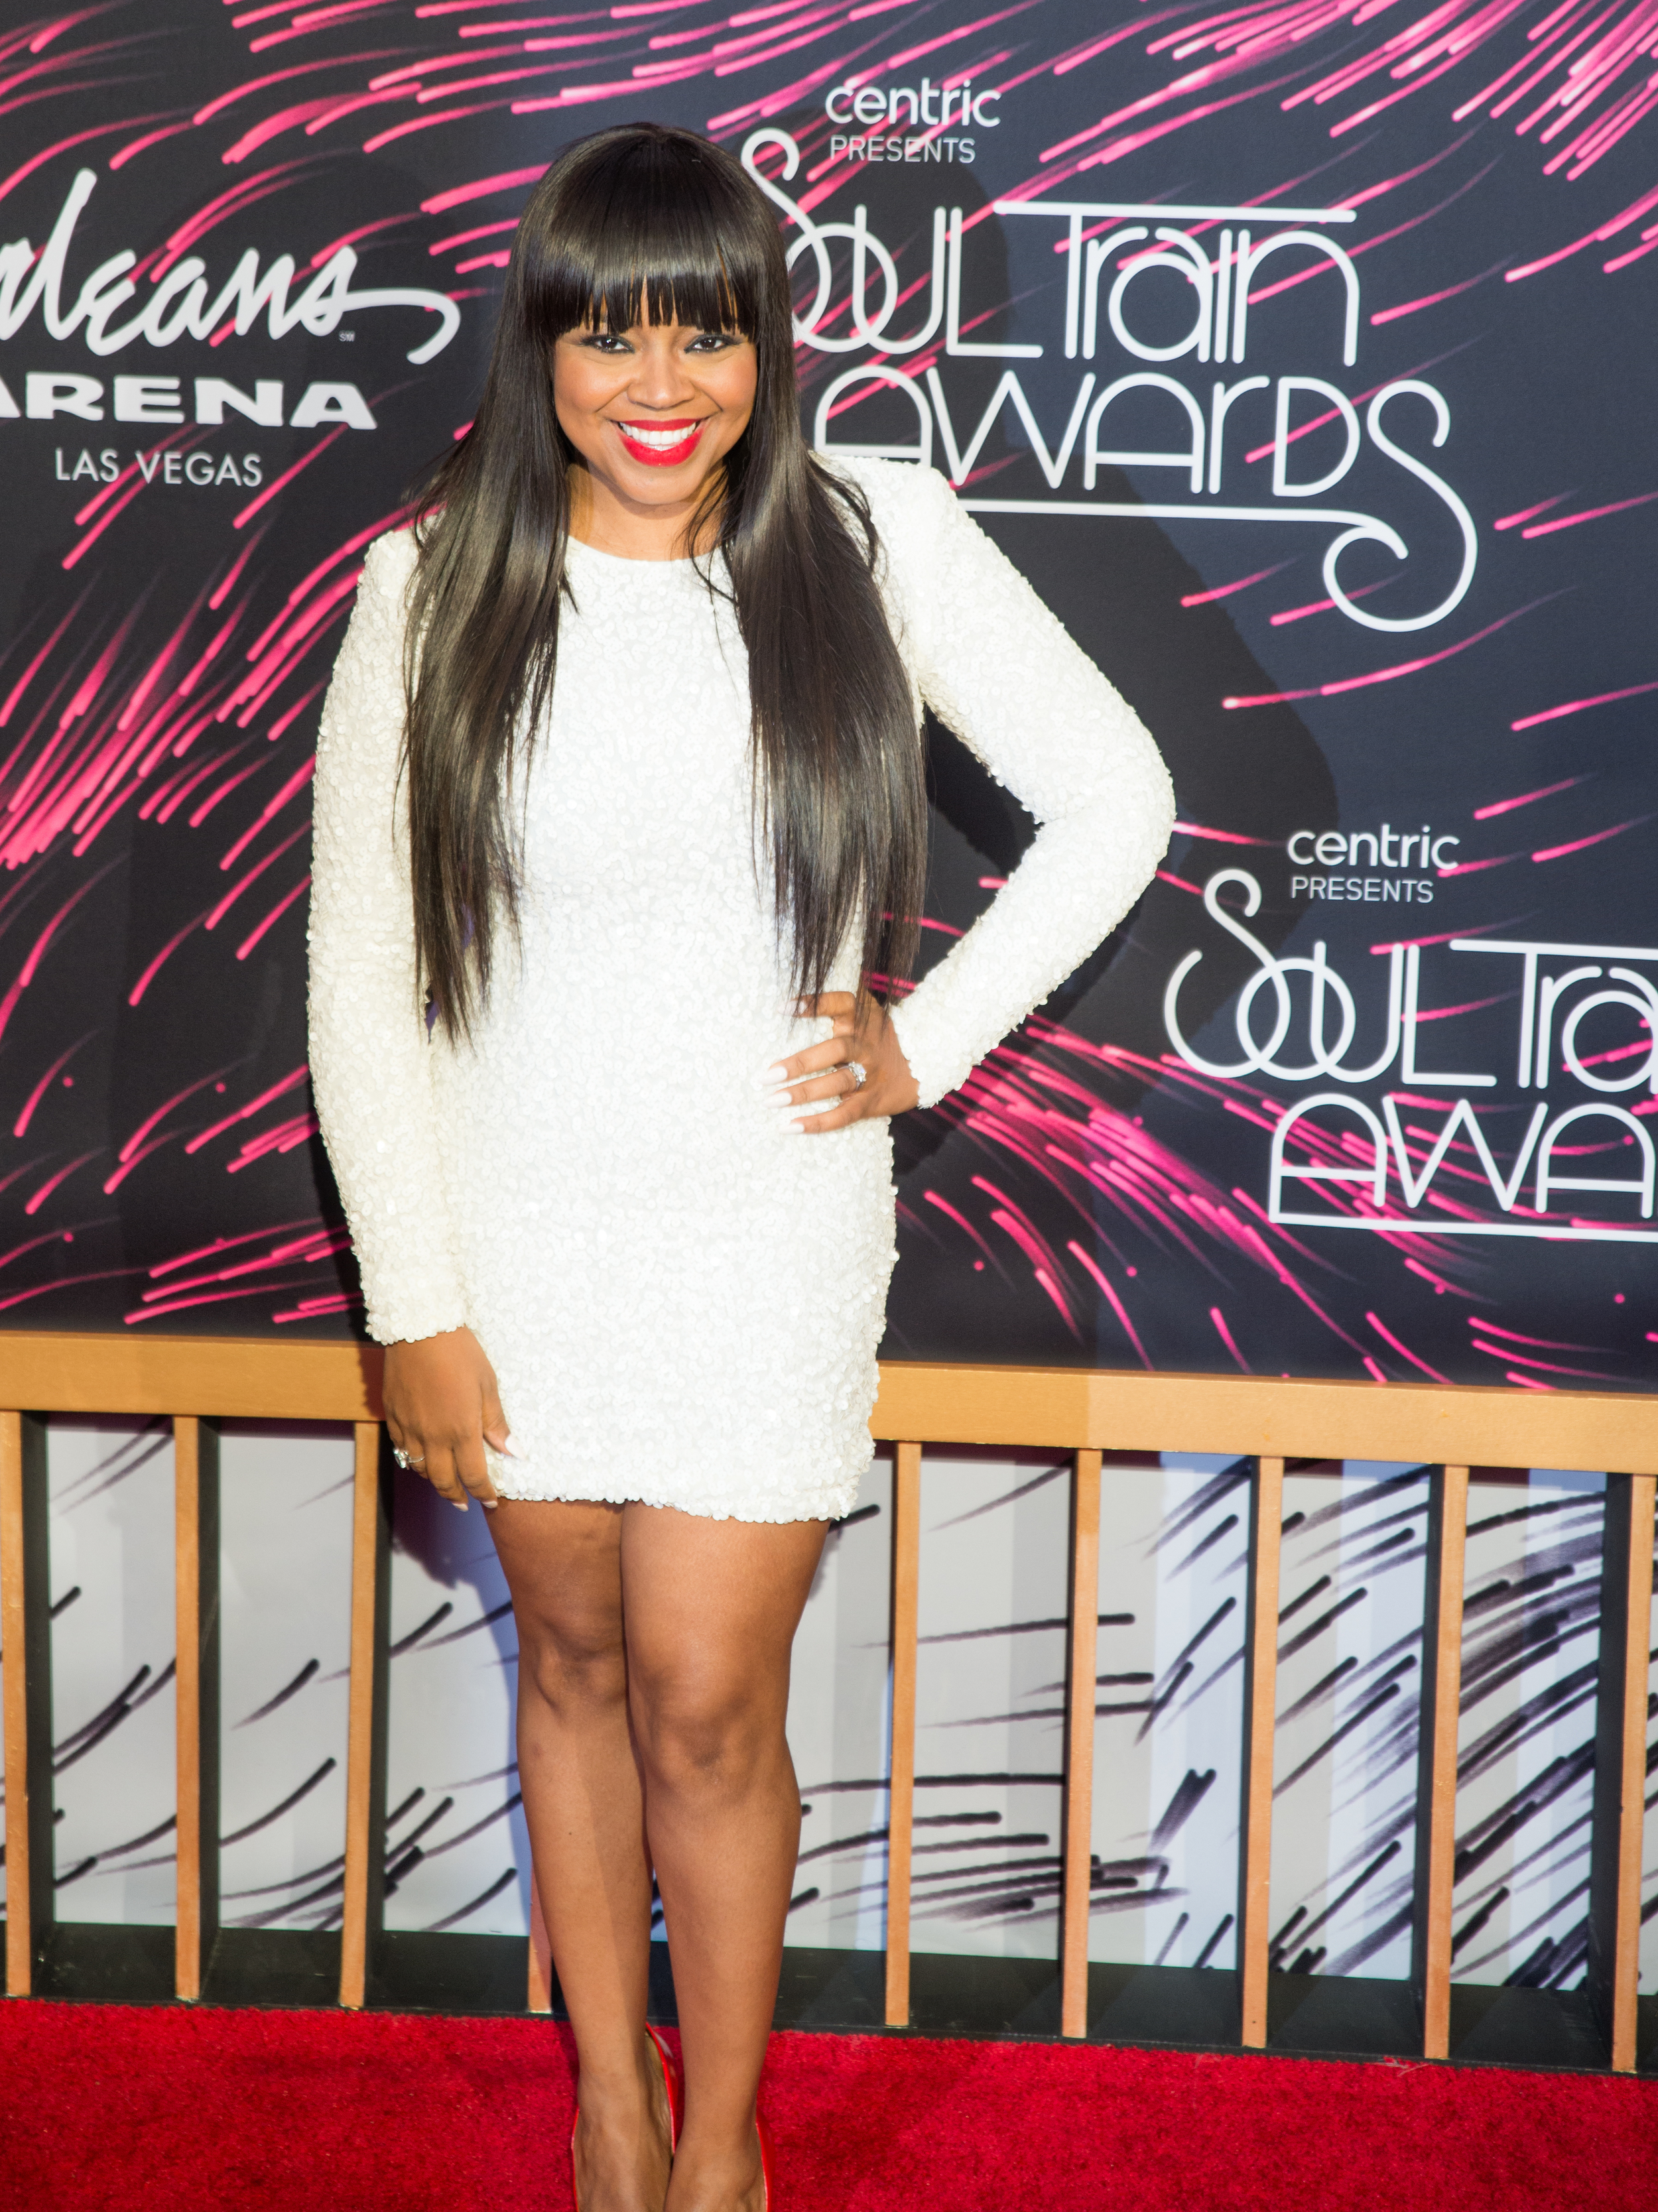 Shanice looked beautiful on the red carpet at the Soul Train Awards